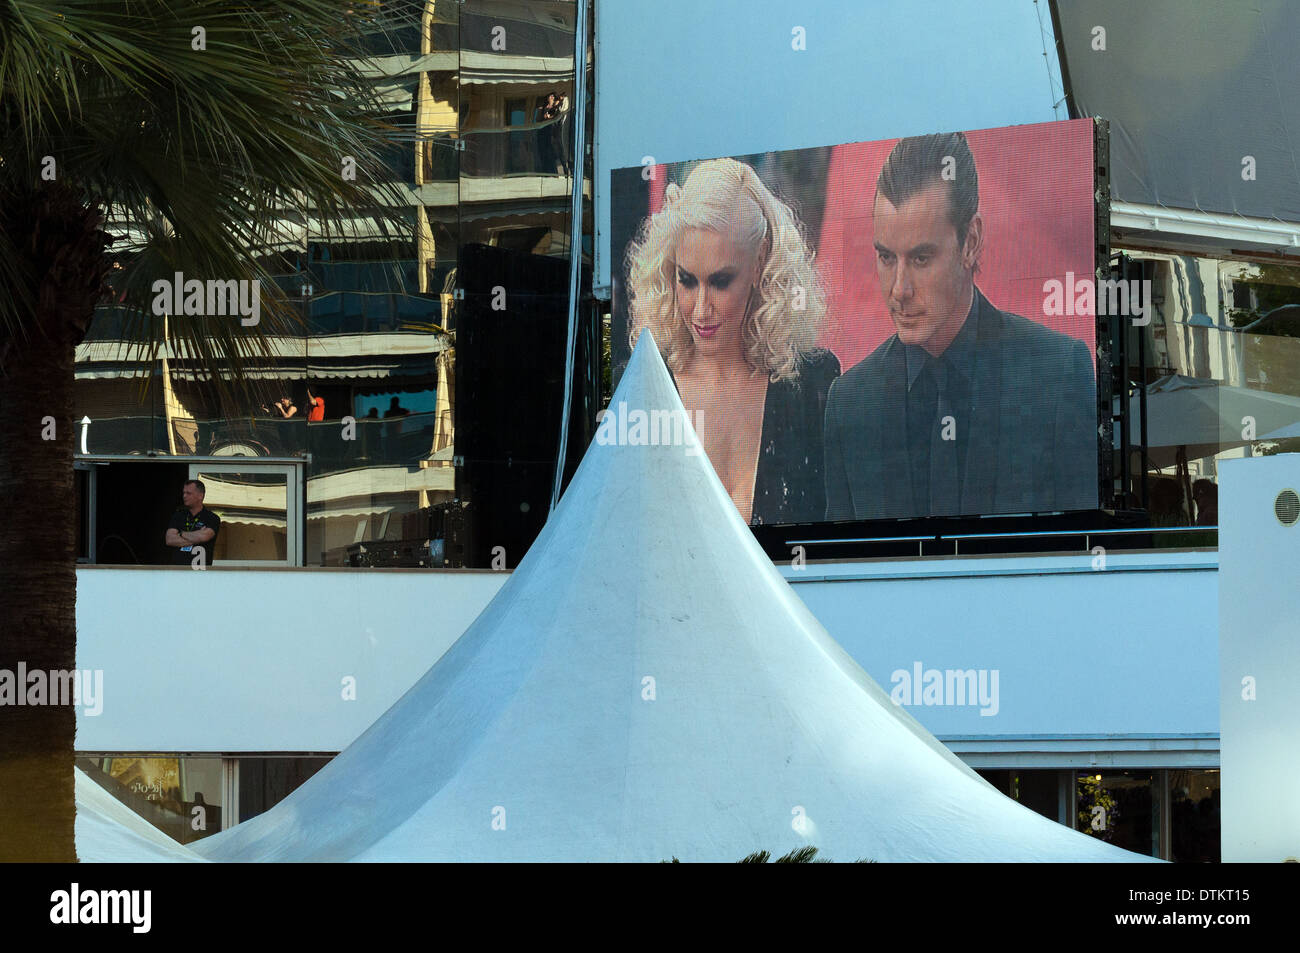 Europe, France, Alpes-Maritimes, Cannes Film Festival. Retransmission of the red carpet on the big screen. - Stock Image